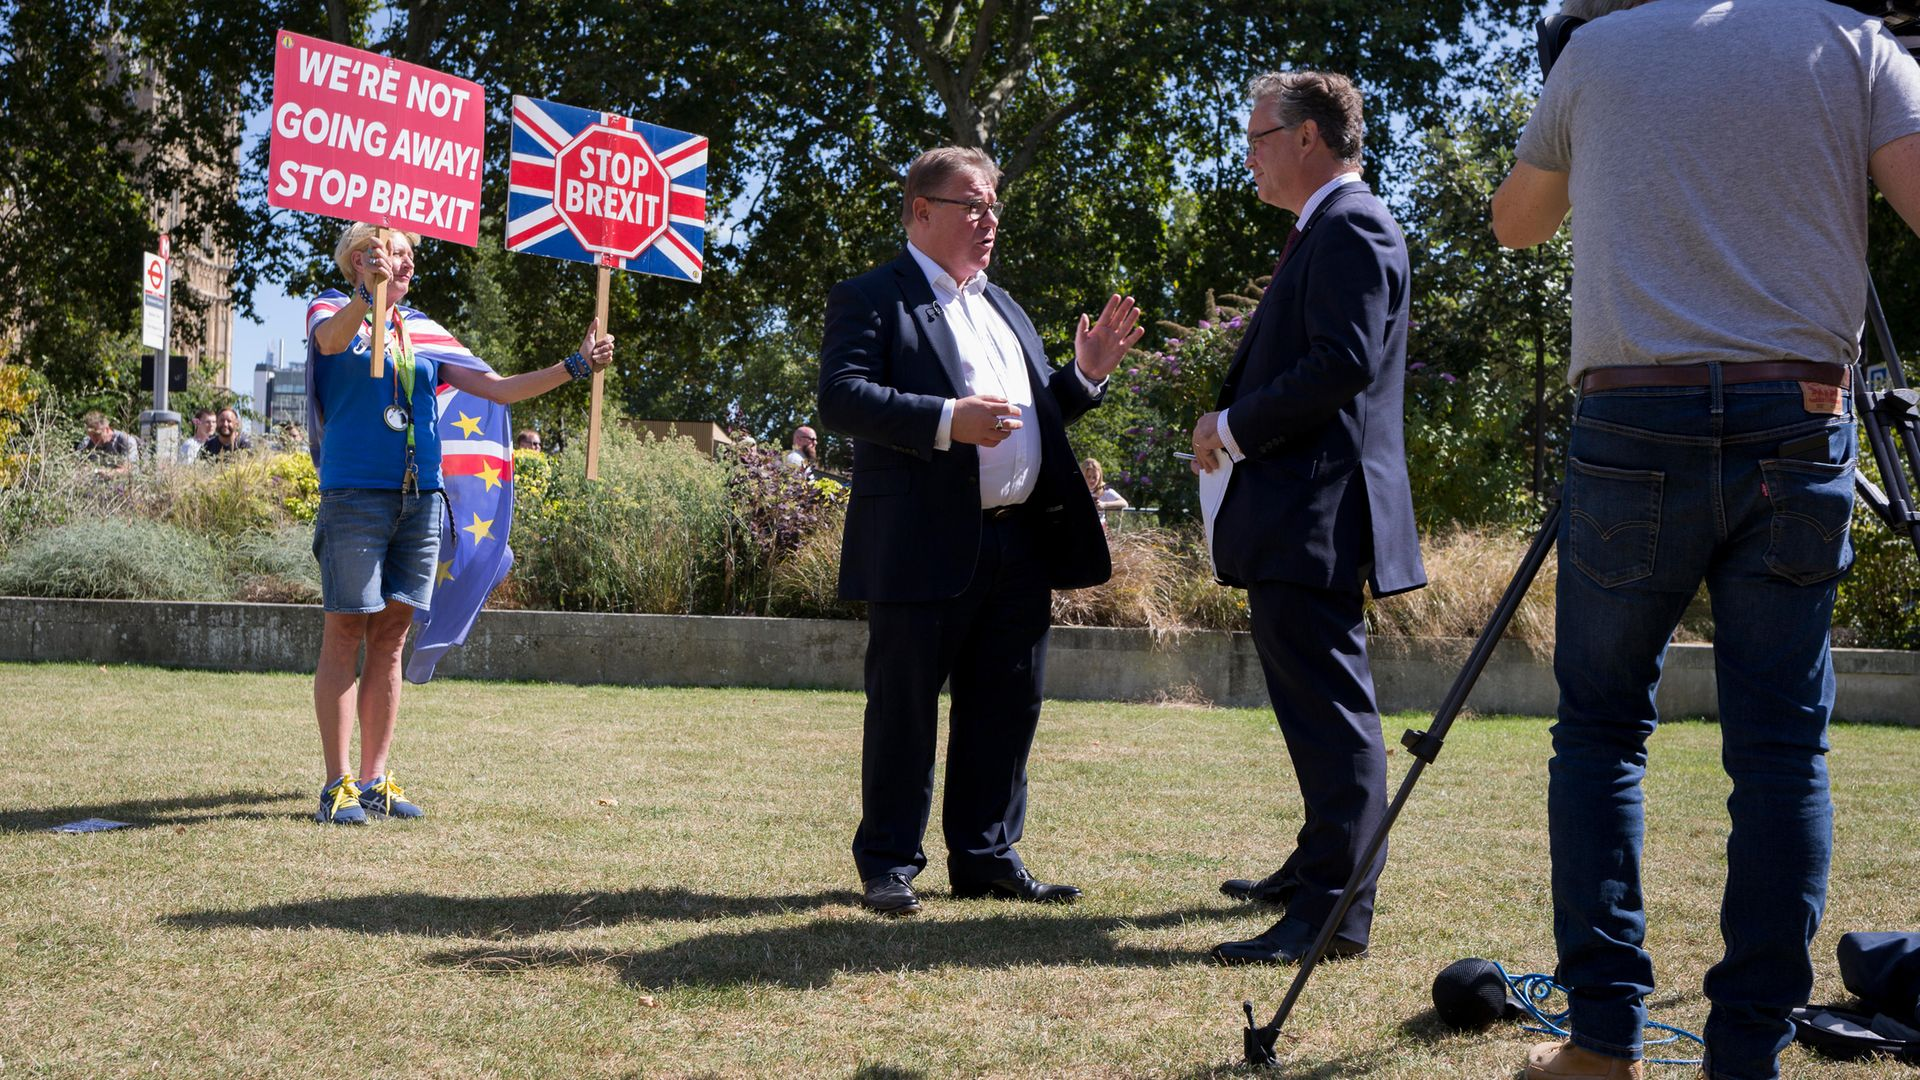 As a Remain protestor holds up placards behind him, Brexiteer MP Mark Francois is interviewed on College Green in August 2019 - Credit: In Pictures via Getty Images